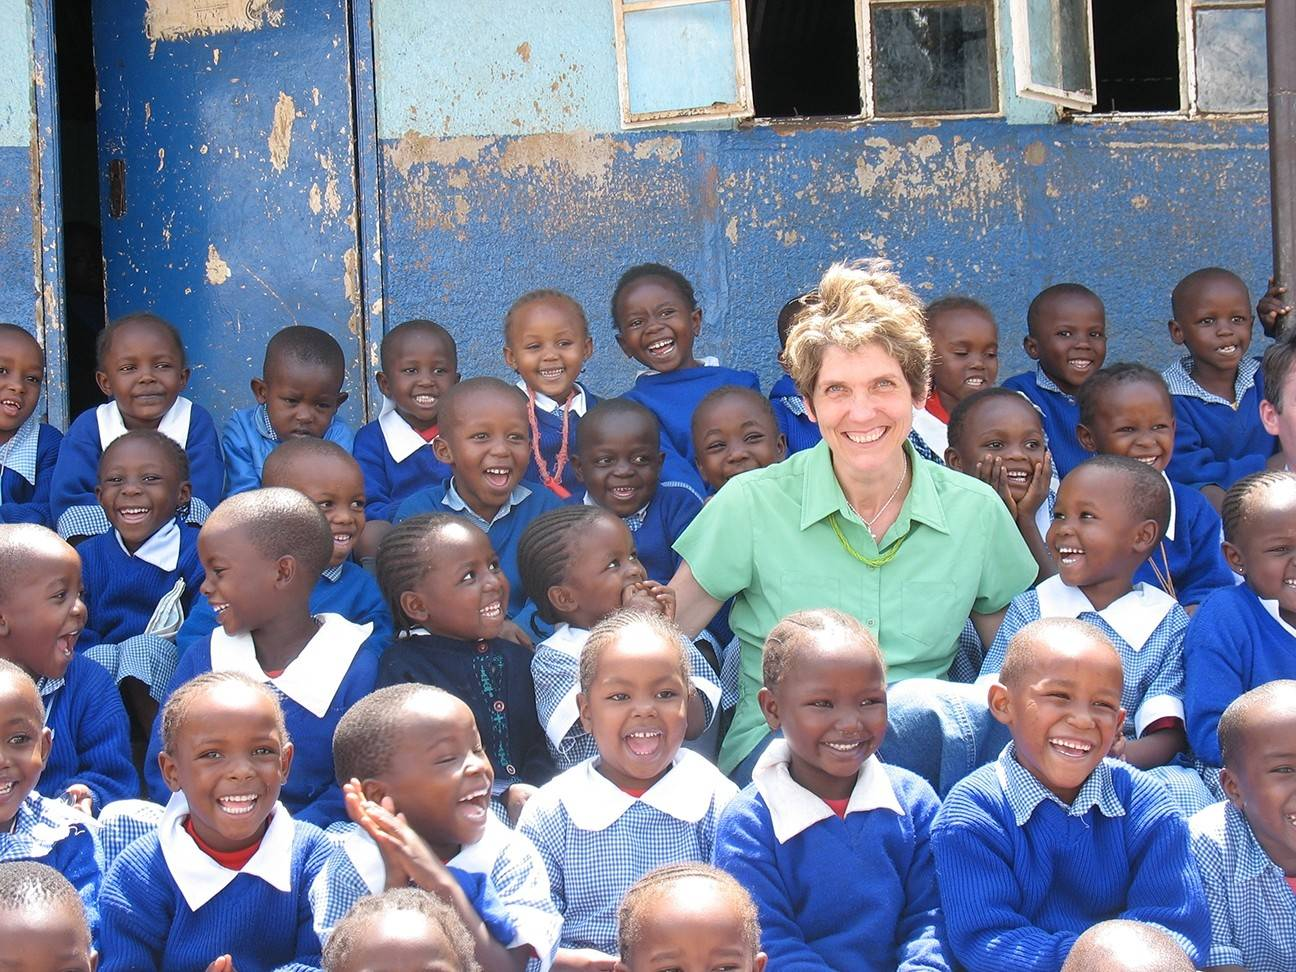 Kathy Cathey, a music instructor and a member of All Souls Anglican Church in Wheaton, has visited children in Kinyago-Dandora School in Kenya seven times and says she learns about joy and gratitude from the children.